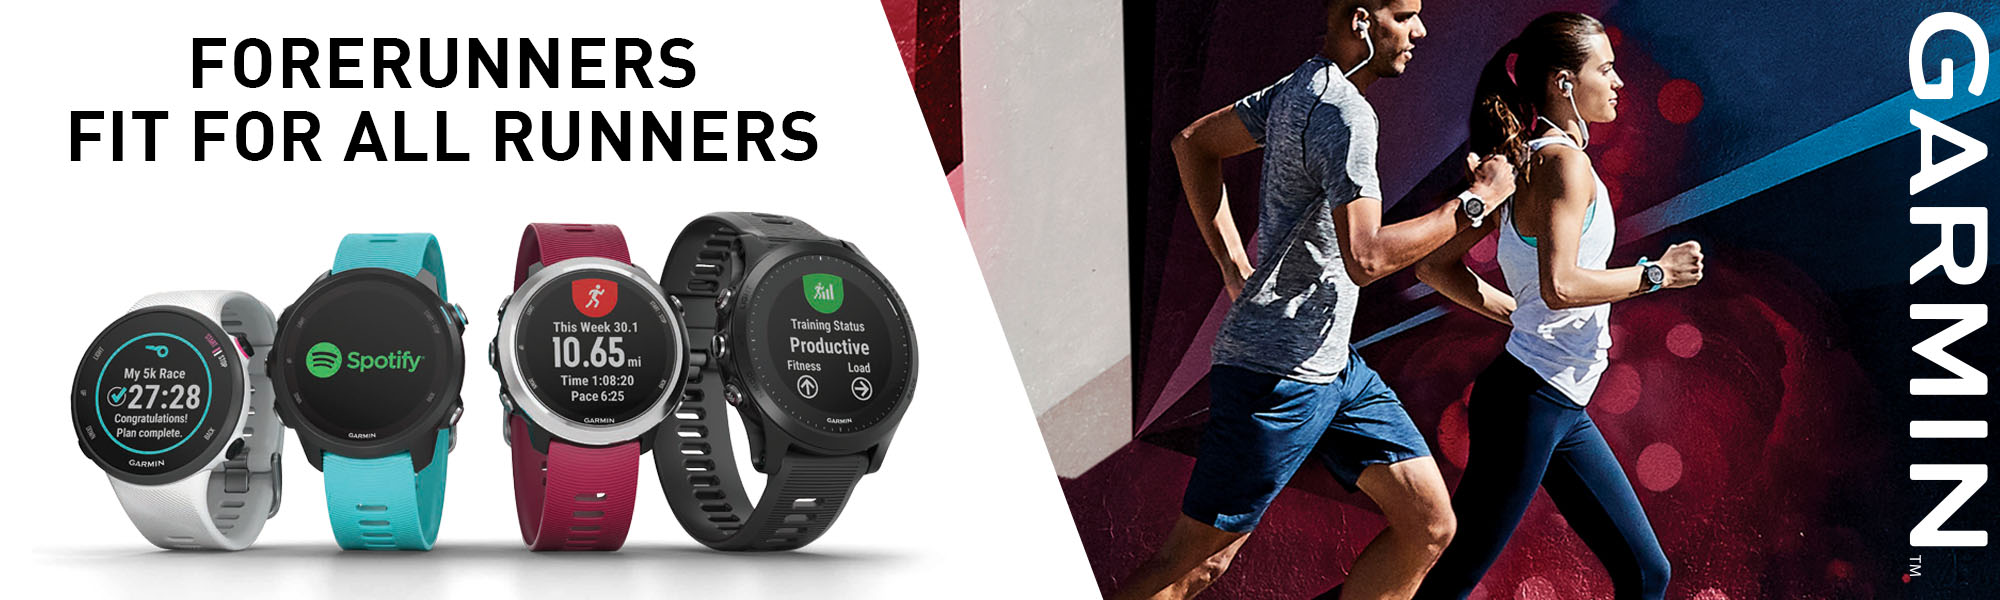 What's new from Garmin? Forerunners for all runners!